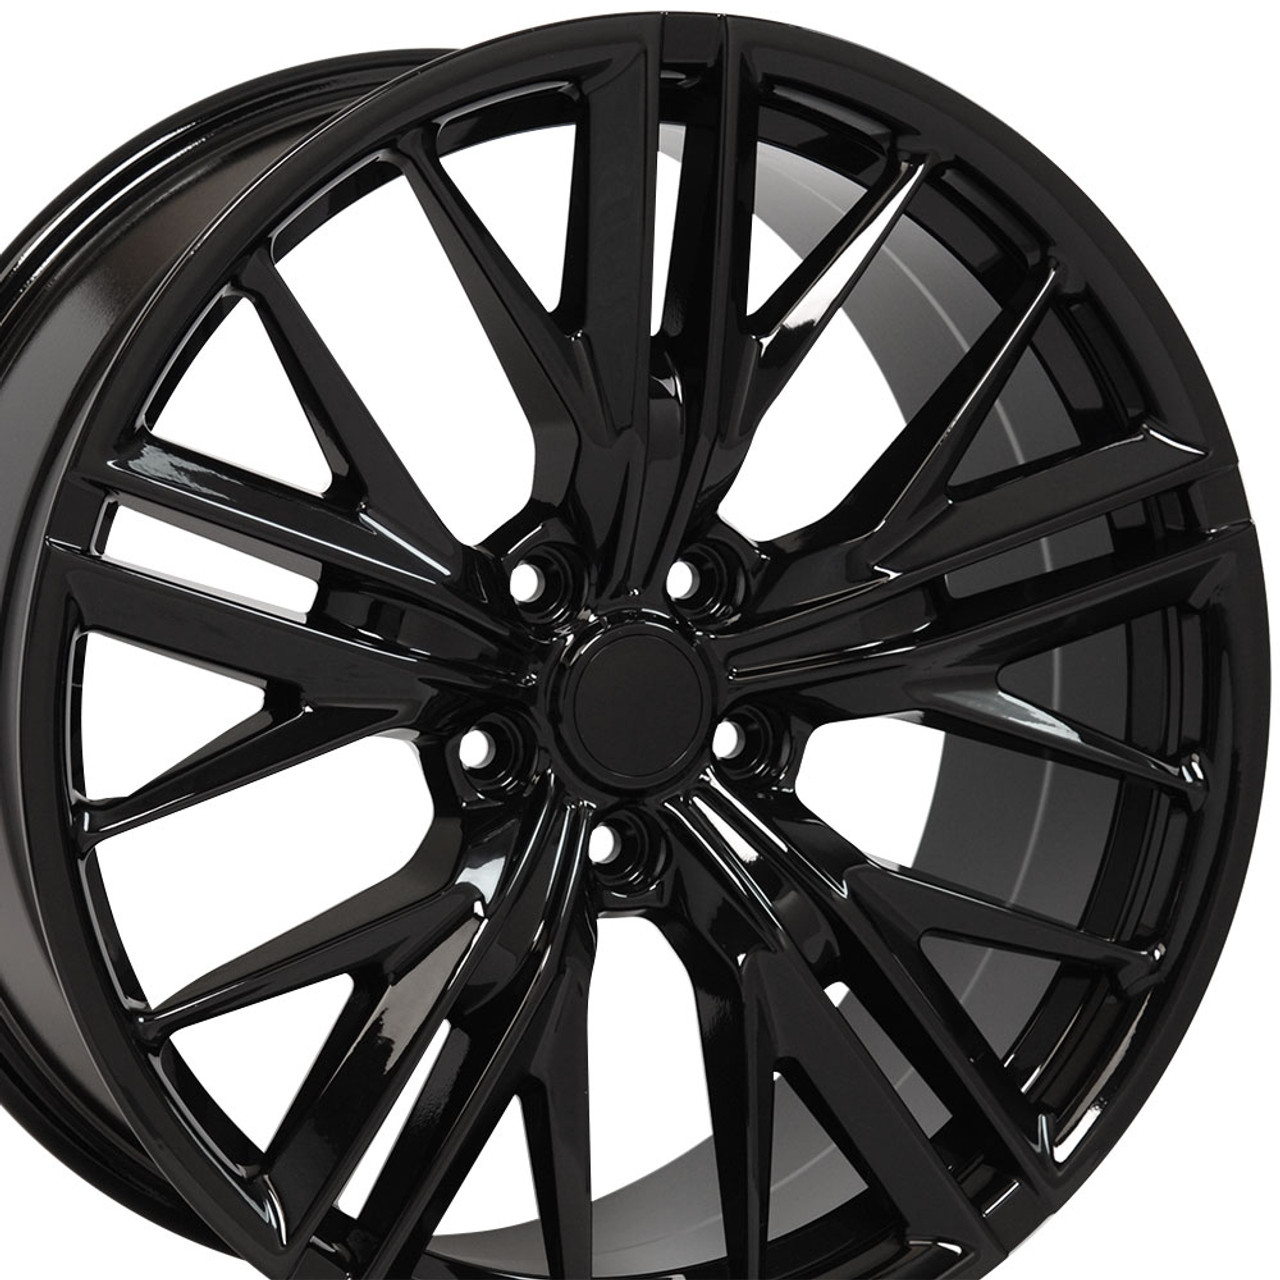 20 Quot Fits Chevy Camaro Zl1 Style Gloss Black Wheels Set Of